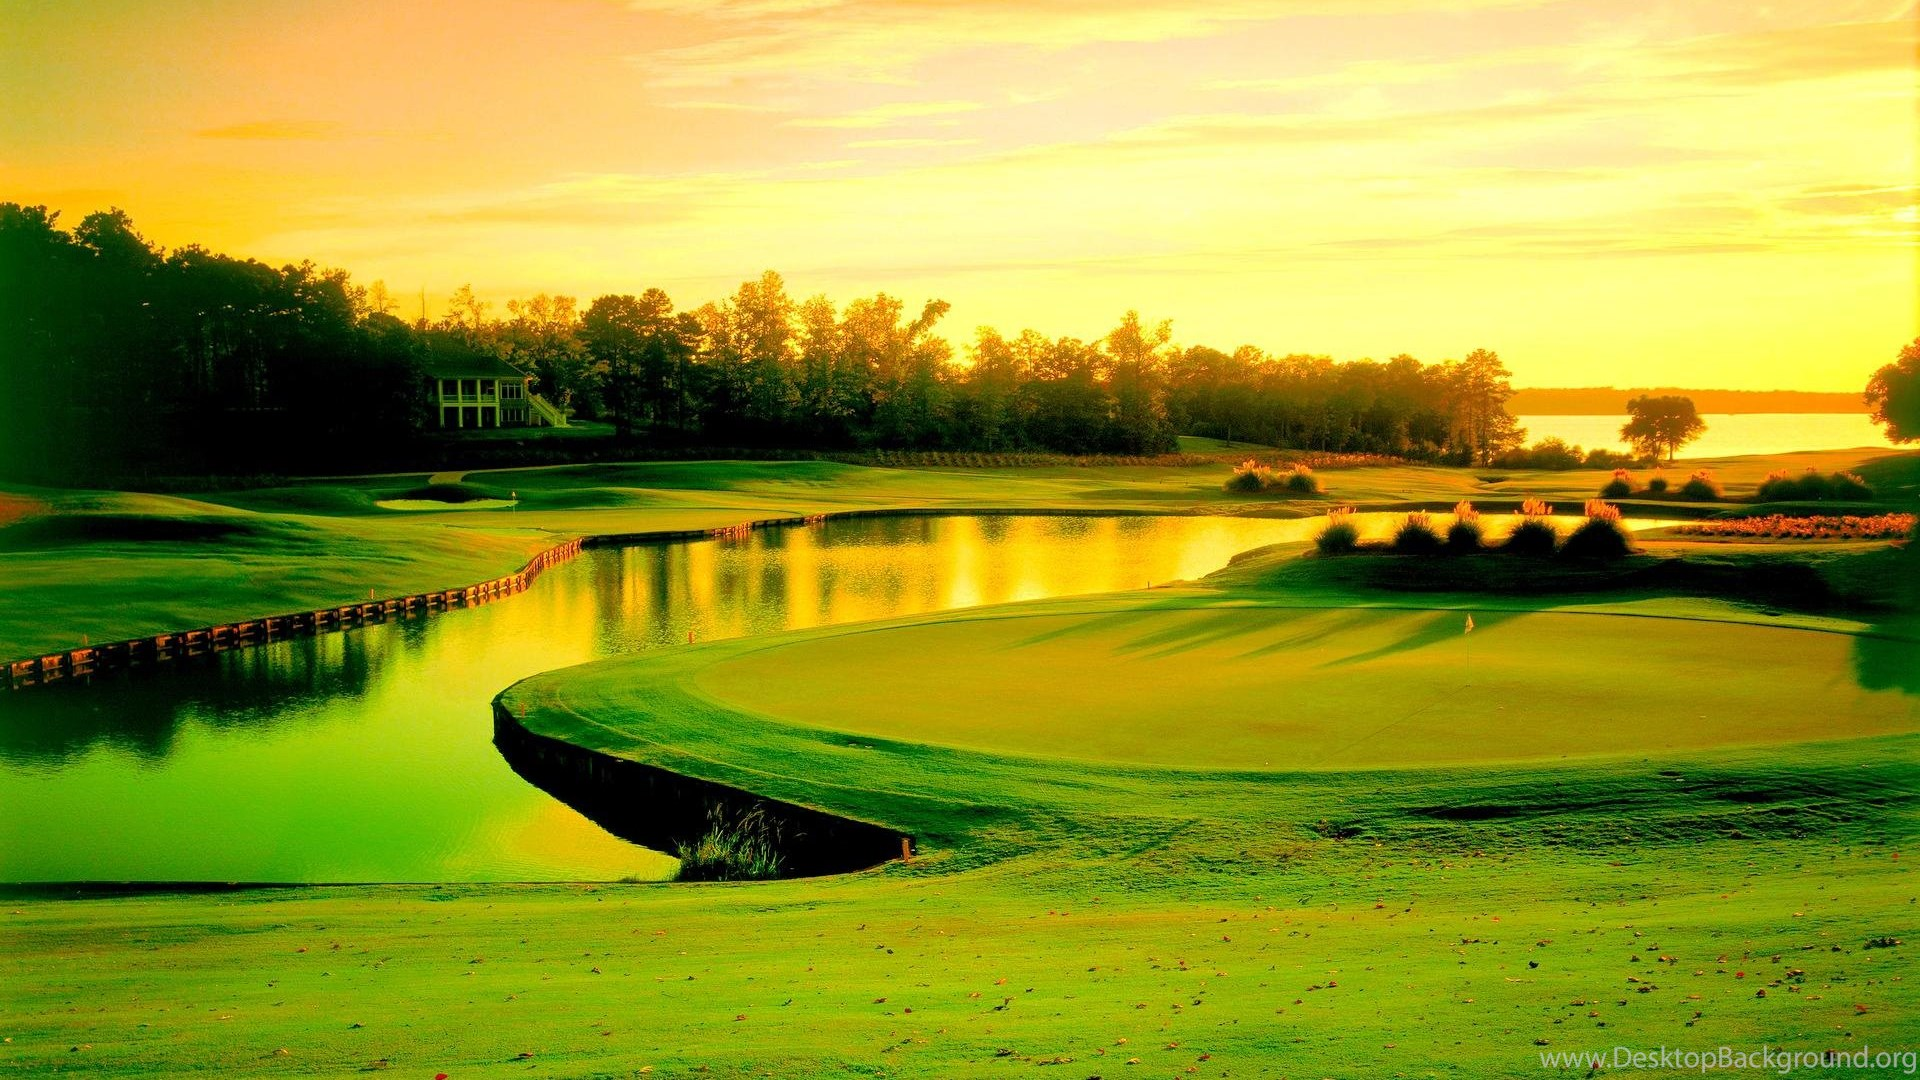 Golf Desktop Wallpaper, Golf Courses Images, New